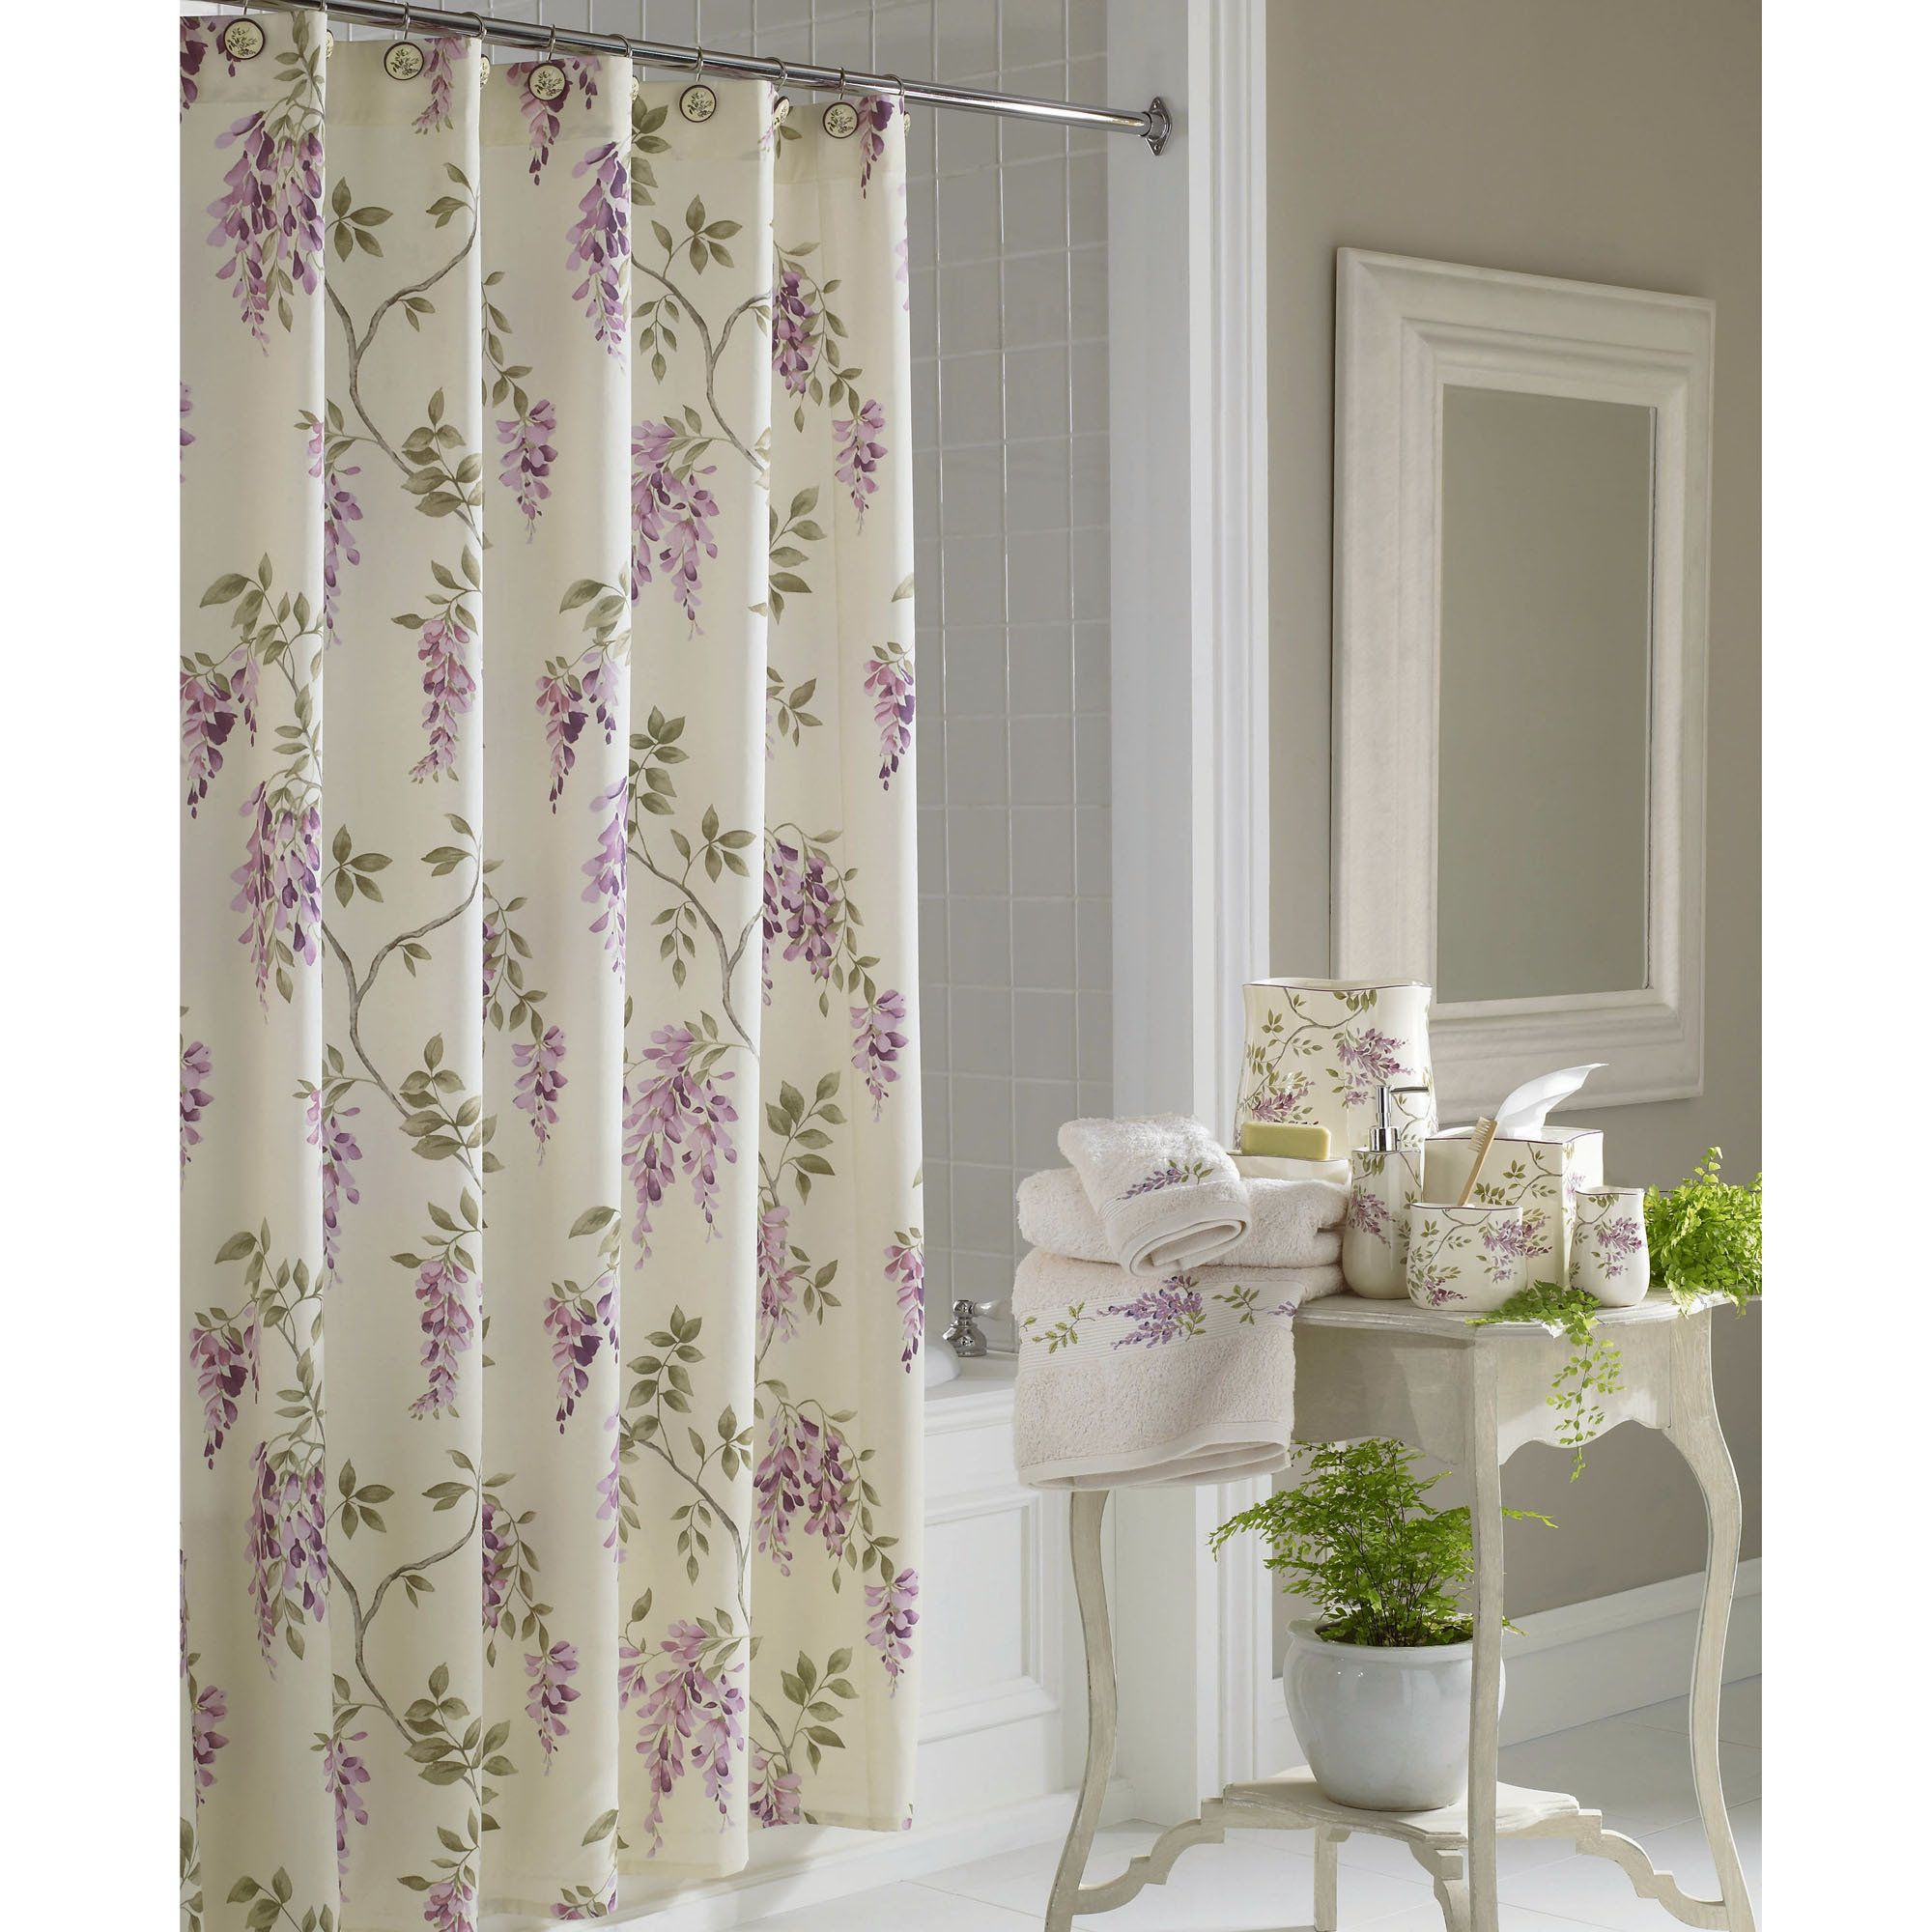 Lavender Shower Curtains Pin By Deborah Lee On 225 Wisteria Drive Floral Shower